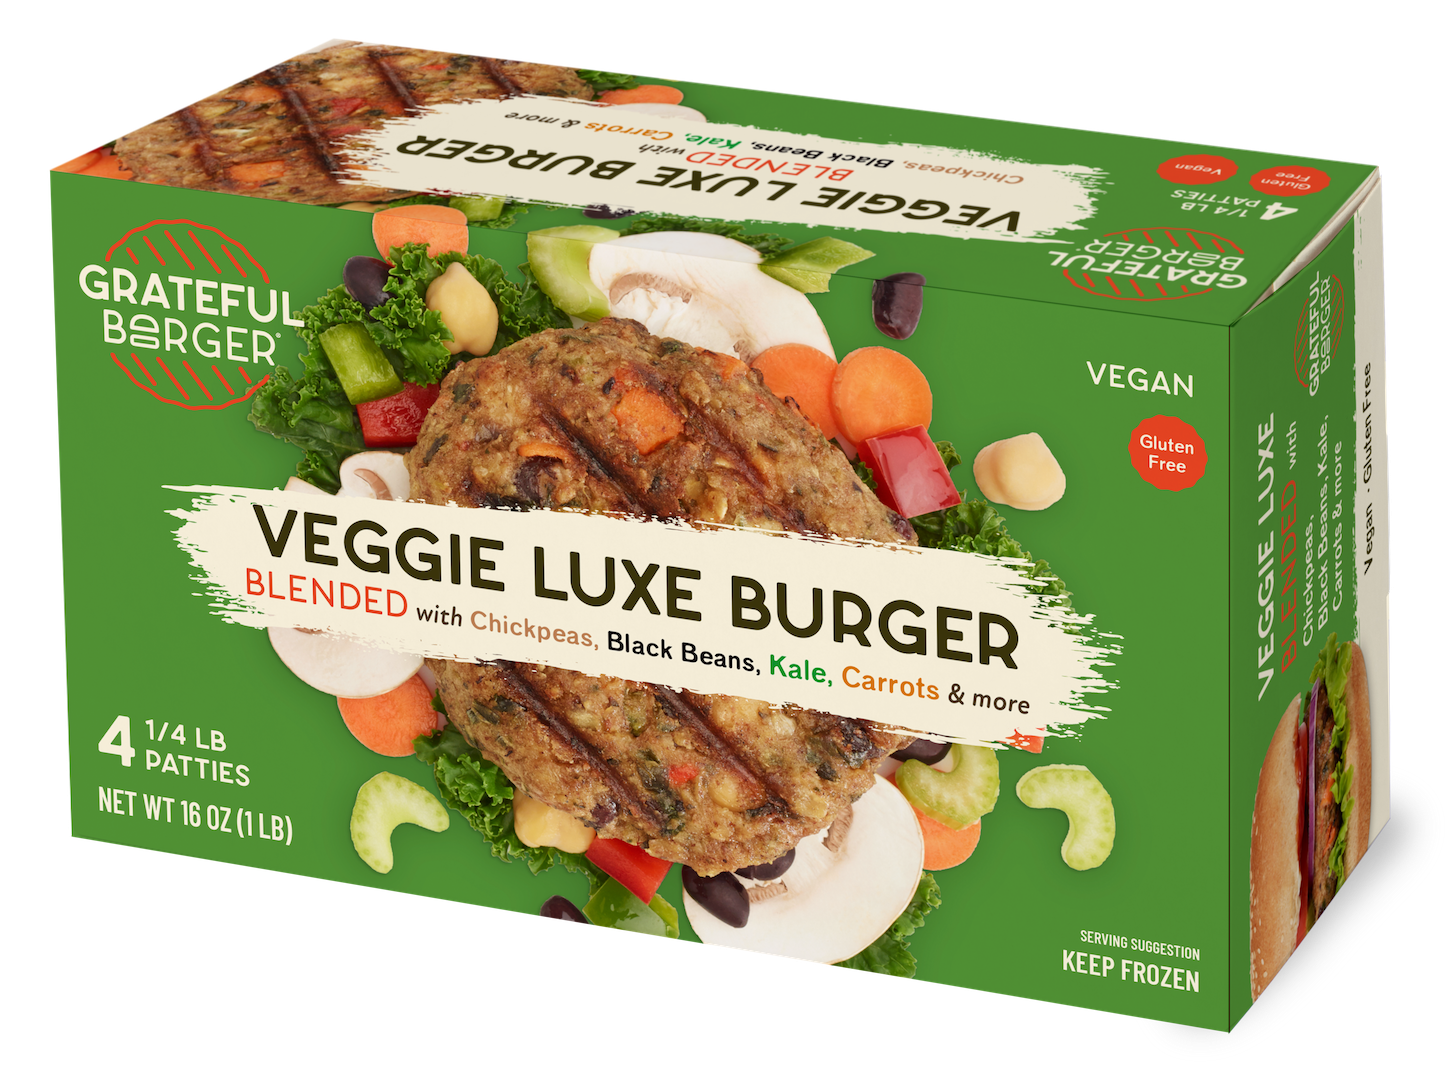 Veggie Luxe Burger with Garden Veggies